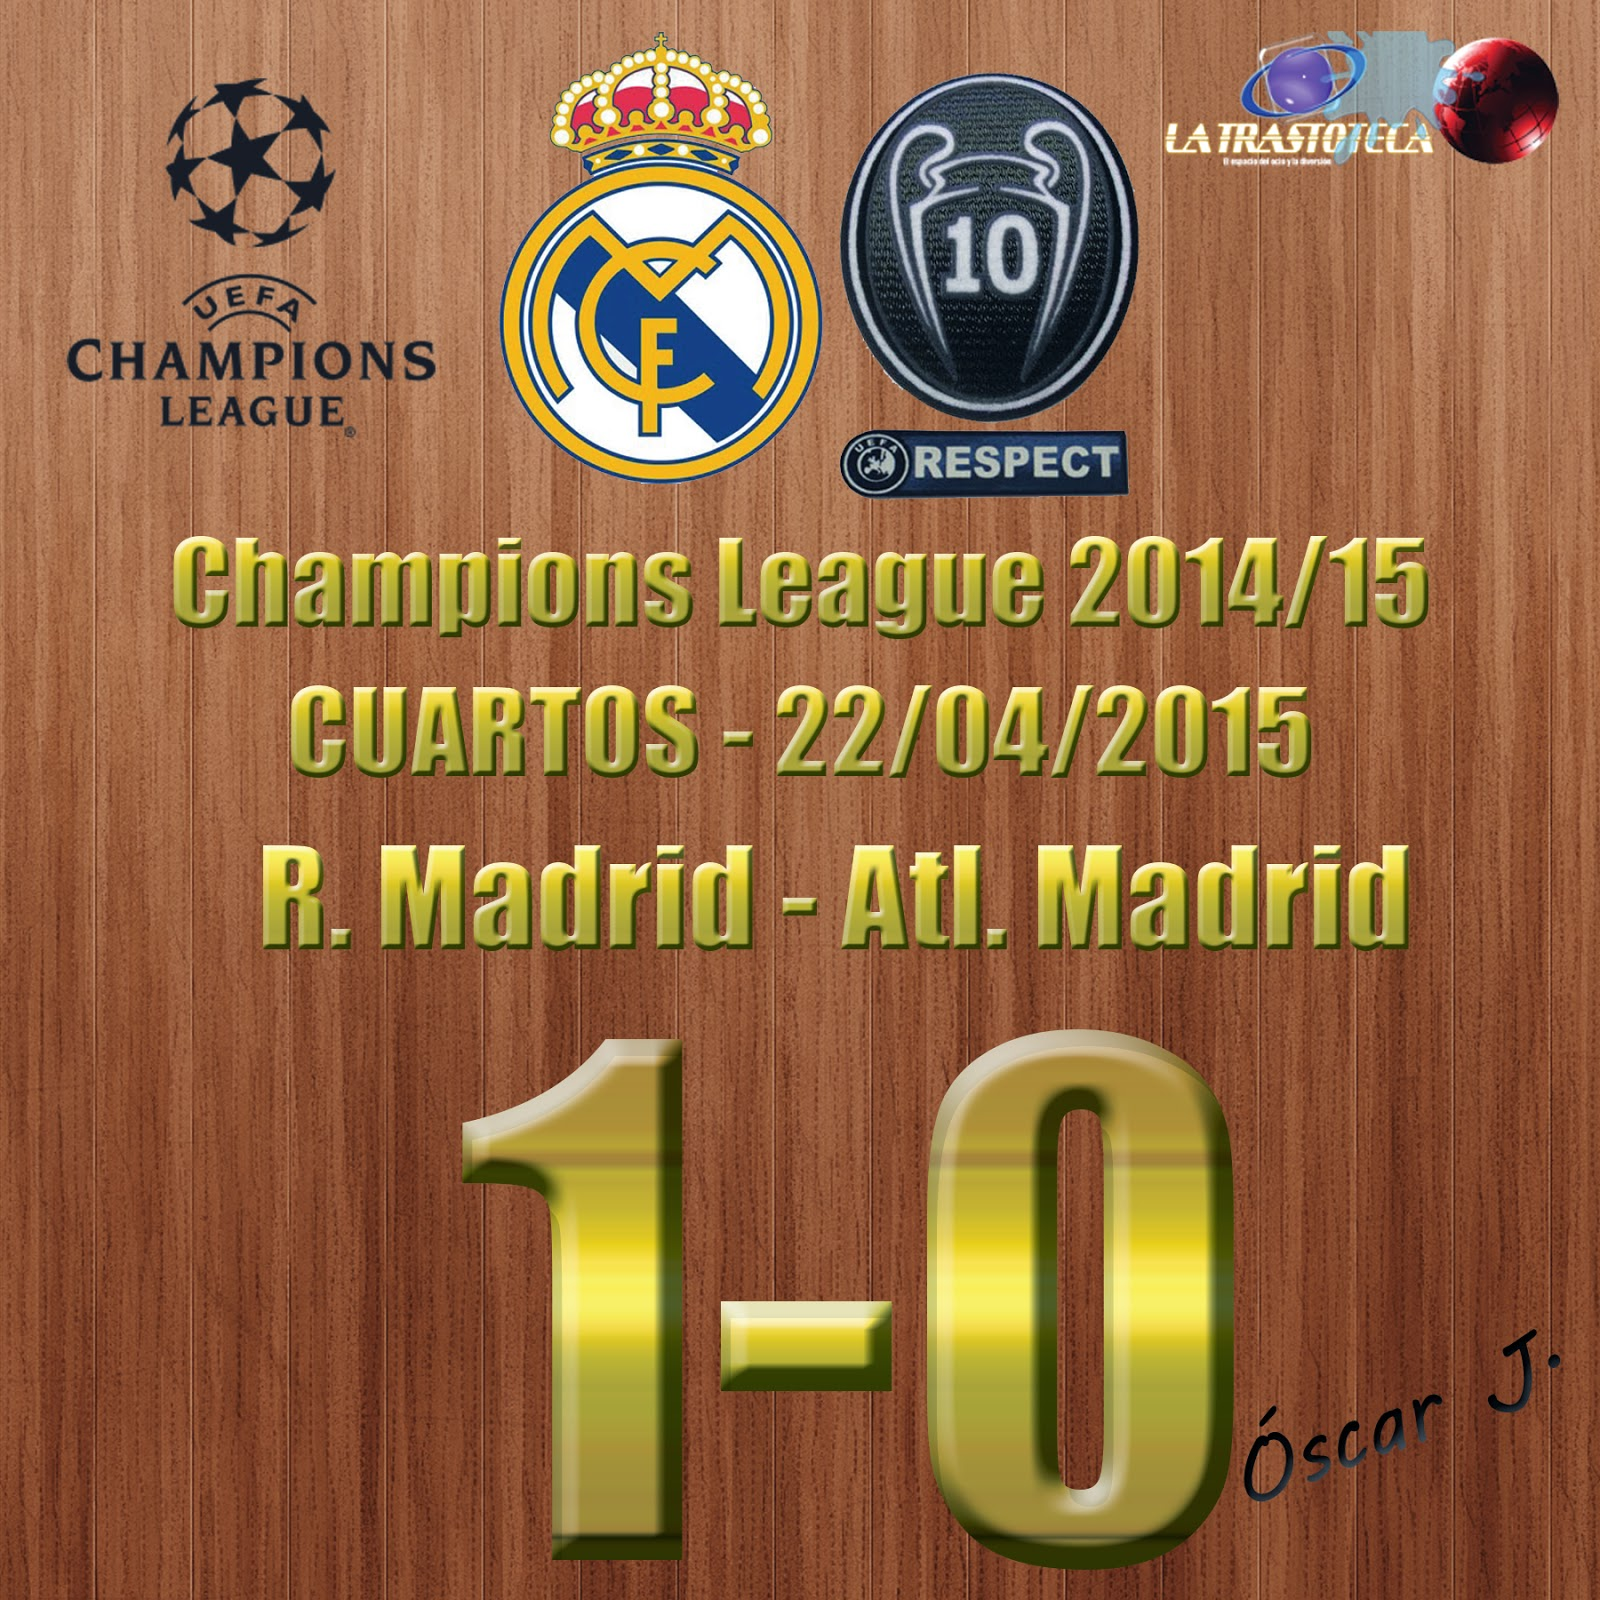 Real Madrid 1-0 Atlético de Madrid - Champions League 2014/15 - Cuartos - (22/4/2014) - REAL MADRID CLASIFICADO.